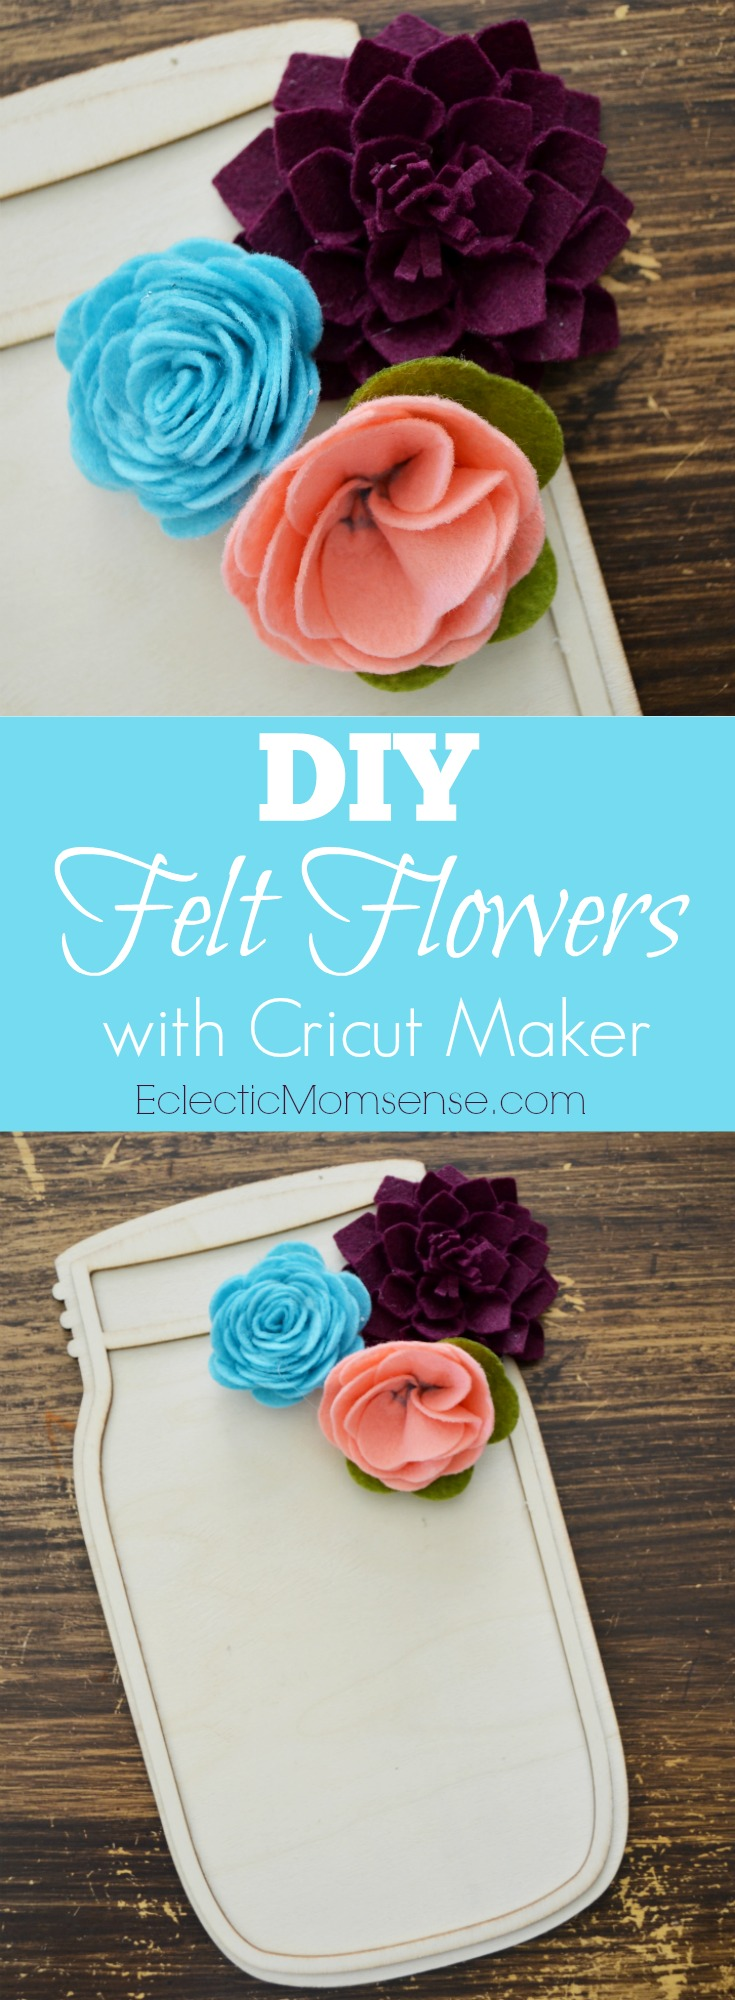 DIY Felt Flowers | Adorning your home with DIY felt flowers is so easy thanks to Simplicity and #Cricut Maker.